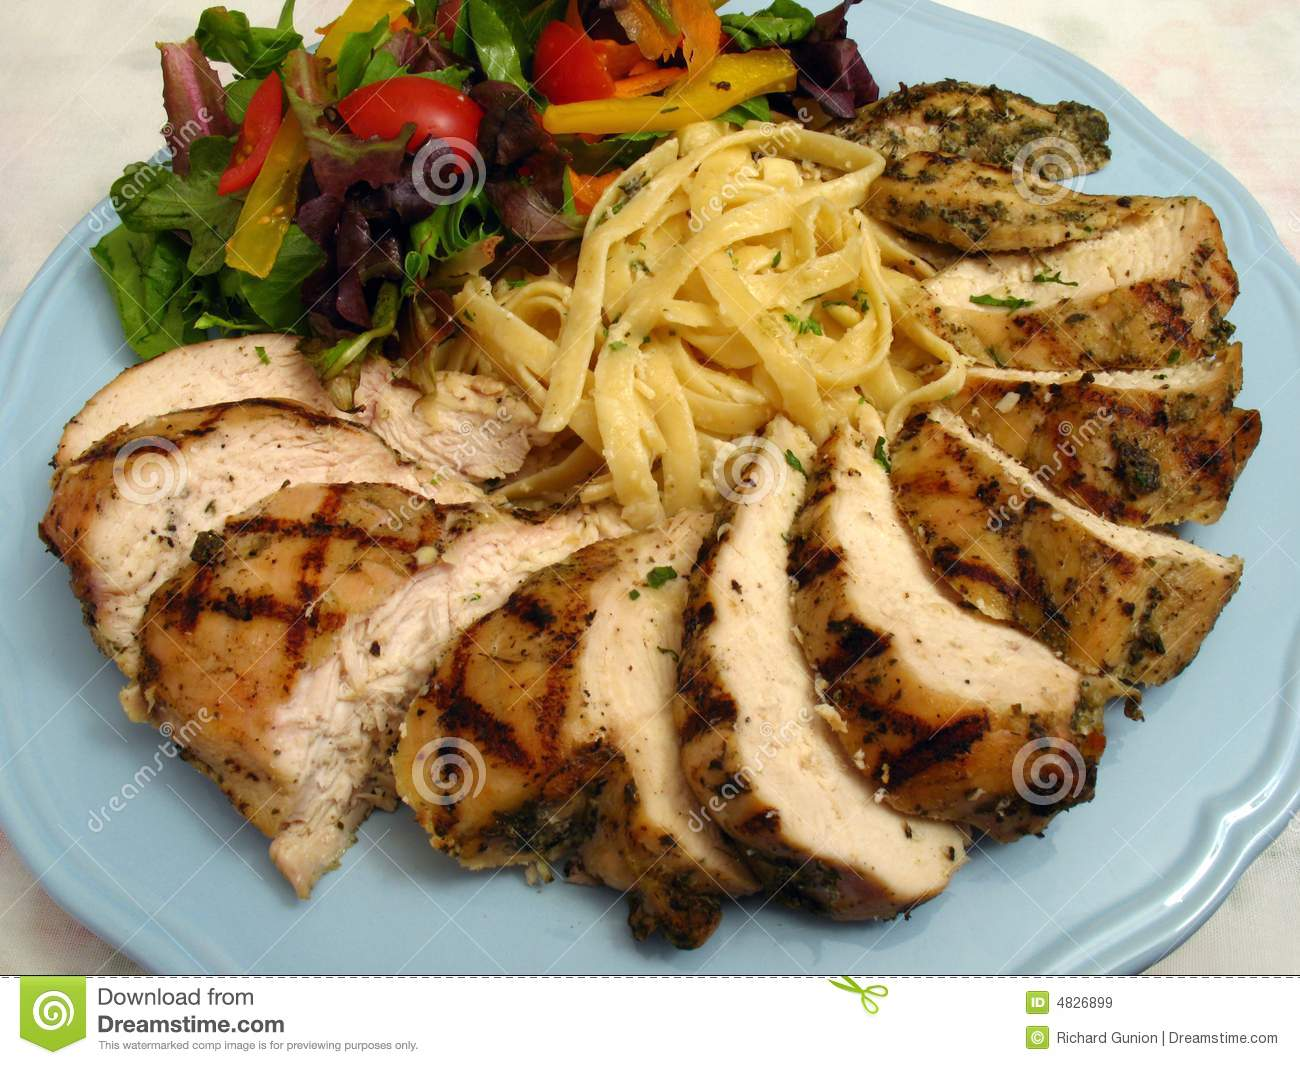 Photo Of Grilled Chicken And Fettuccine Alfredo Dish Served With Salad